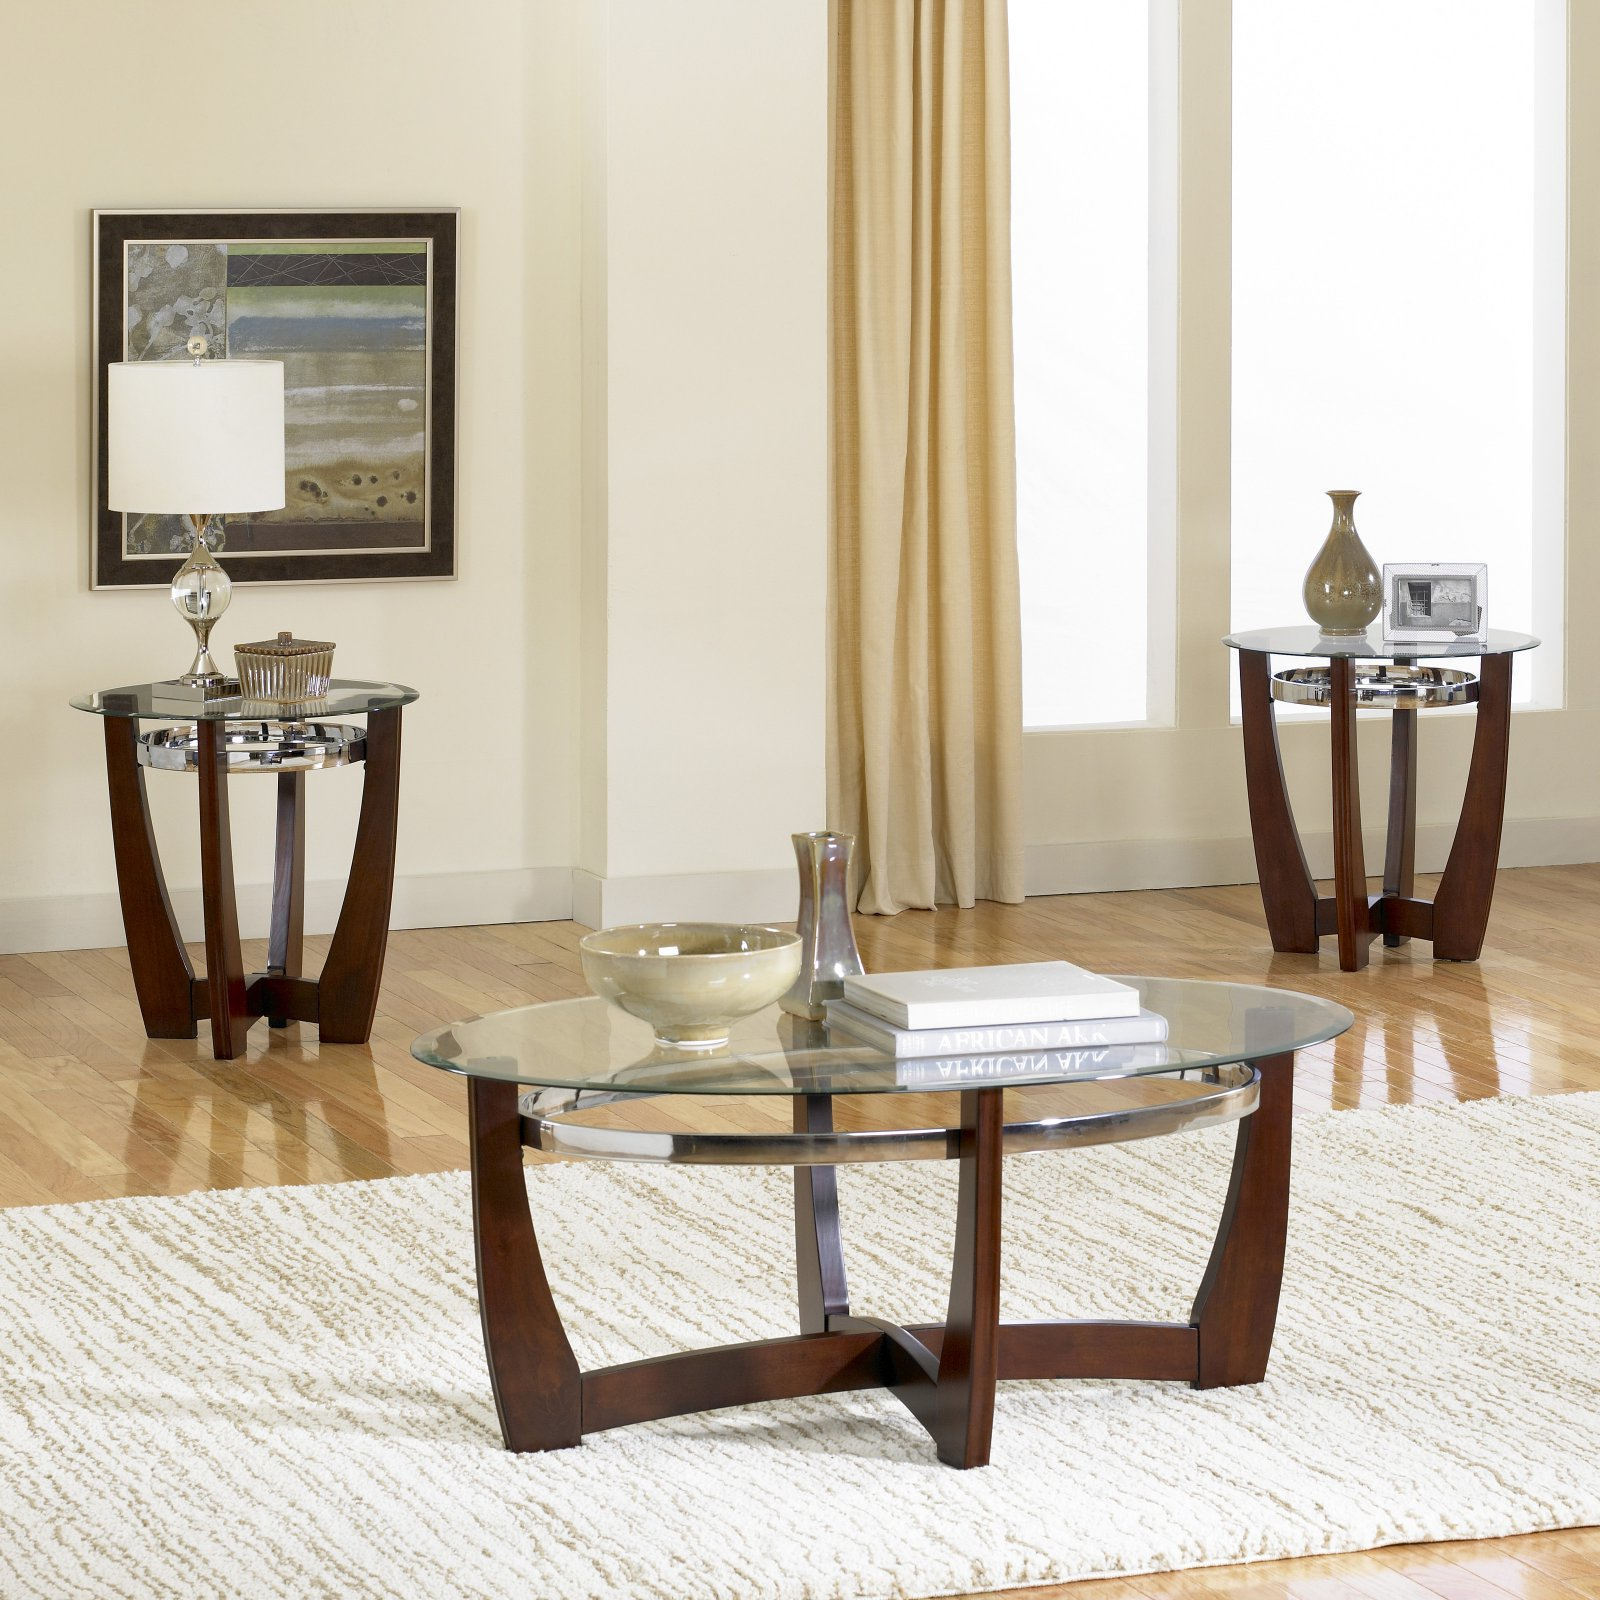 Product Image Standard Furniture Apollo Oval Coffee Table With 2 End Tables